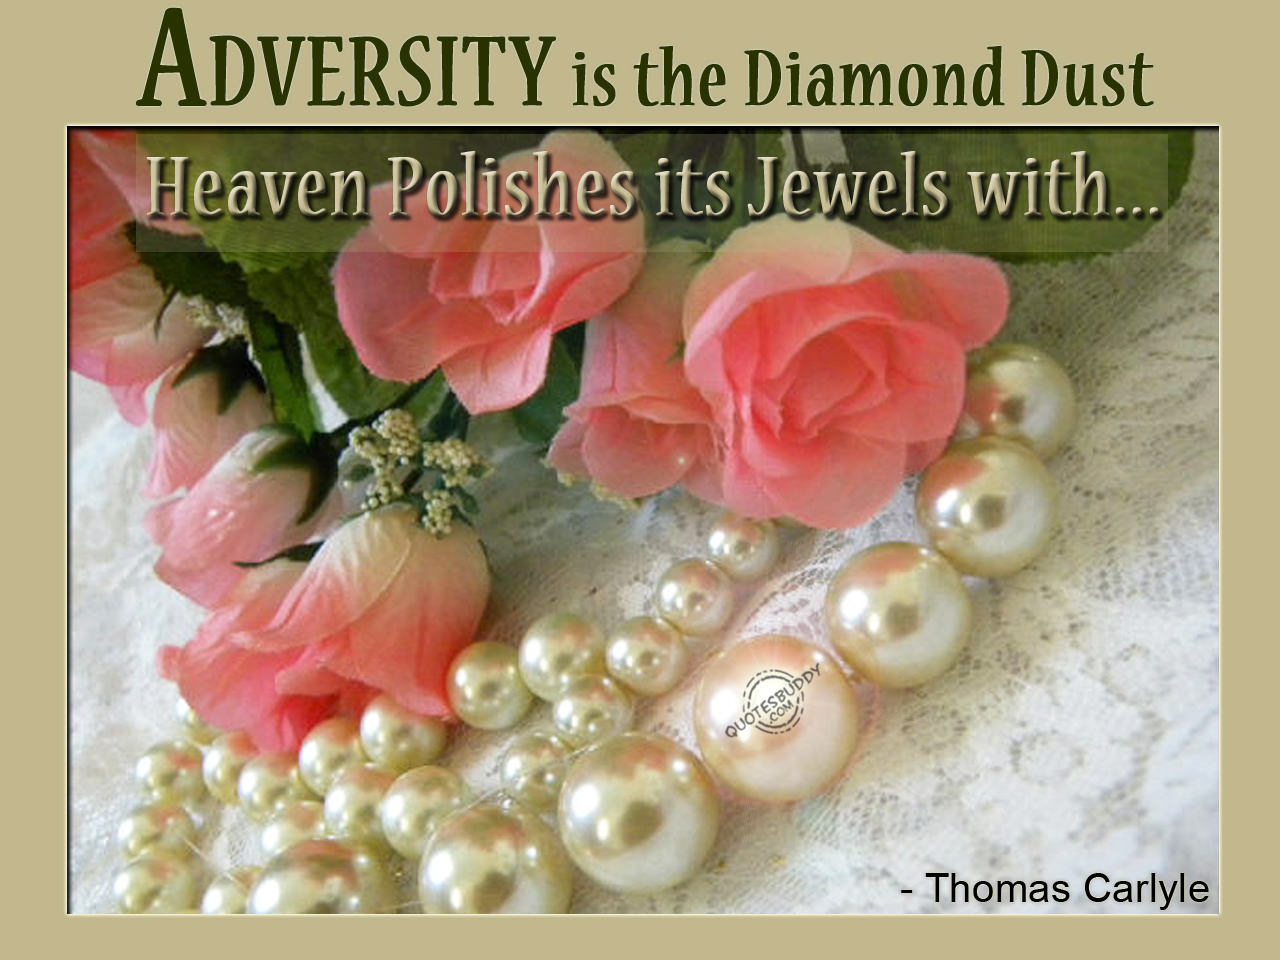 Adversity Is The Diamond Dust Heaven Polishes Its Jewels With - Thomas Carlyle